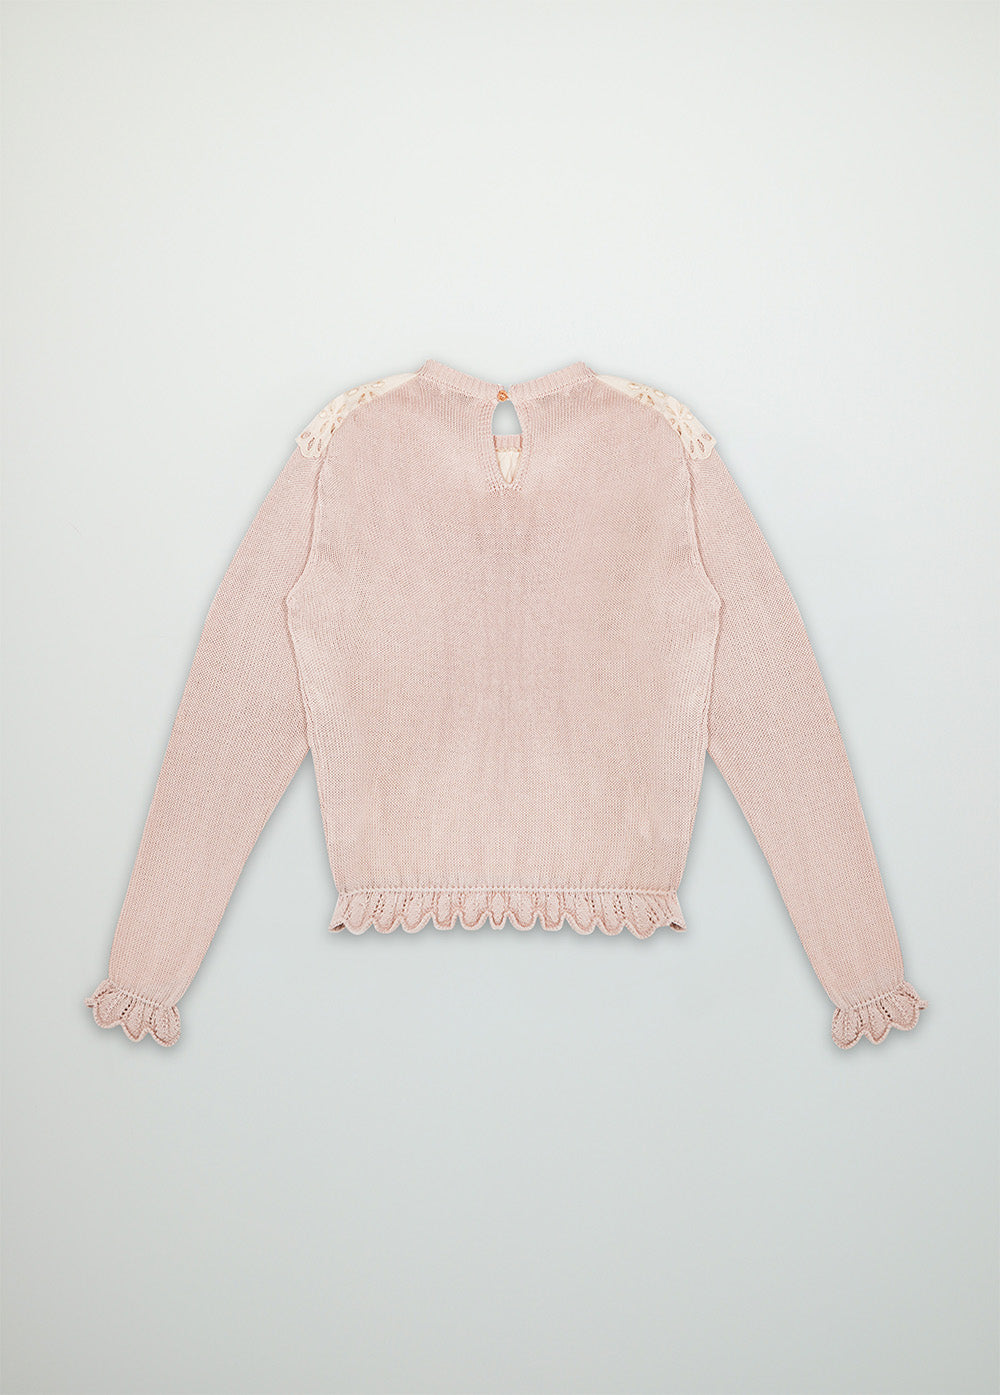 Garance woman knit sweater